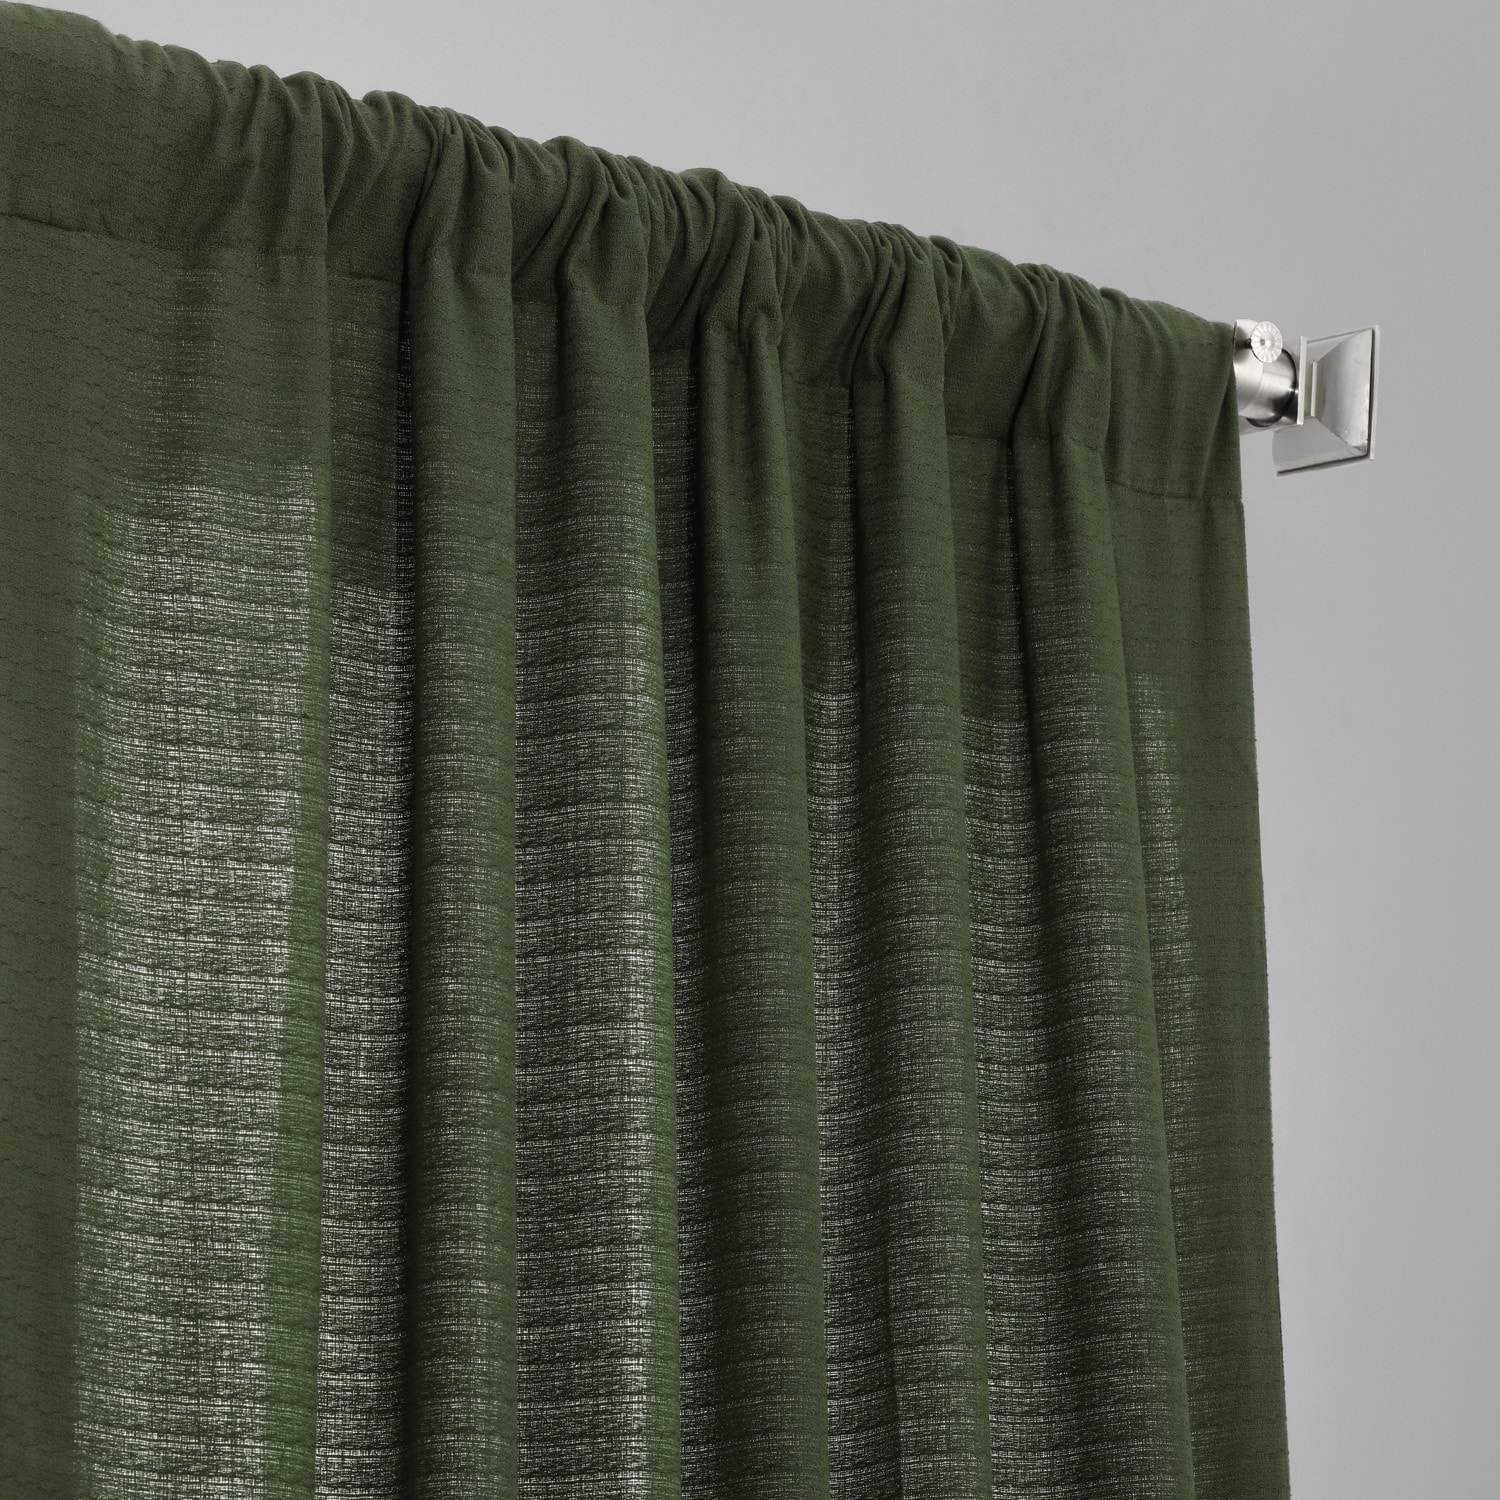 French Green Cotton Textured BarkWeave Curtain